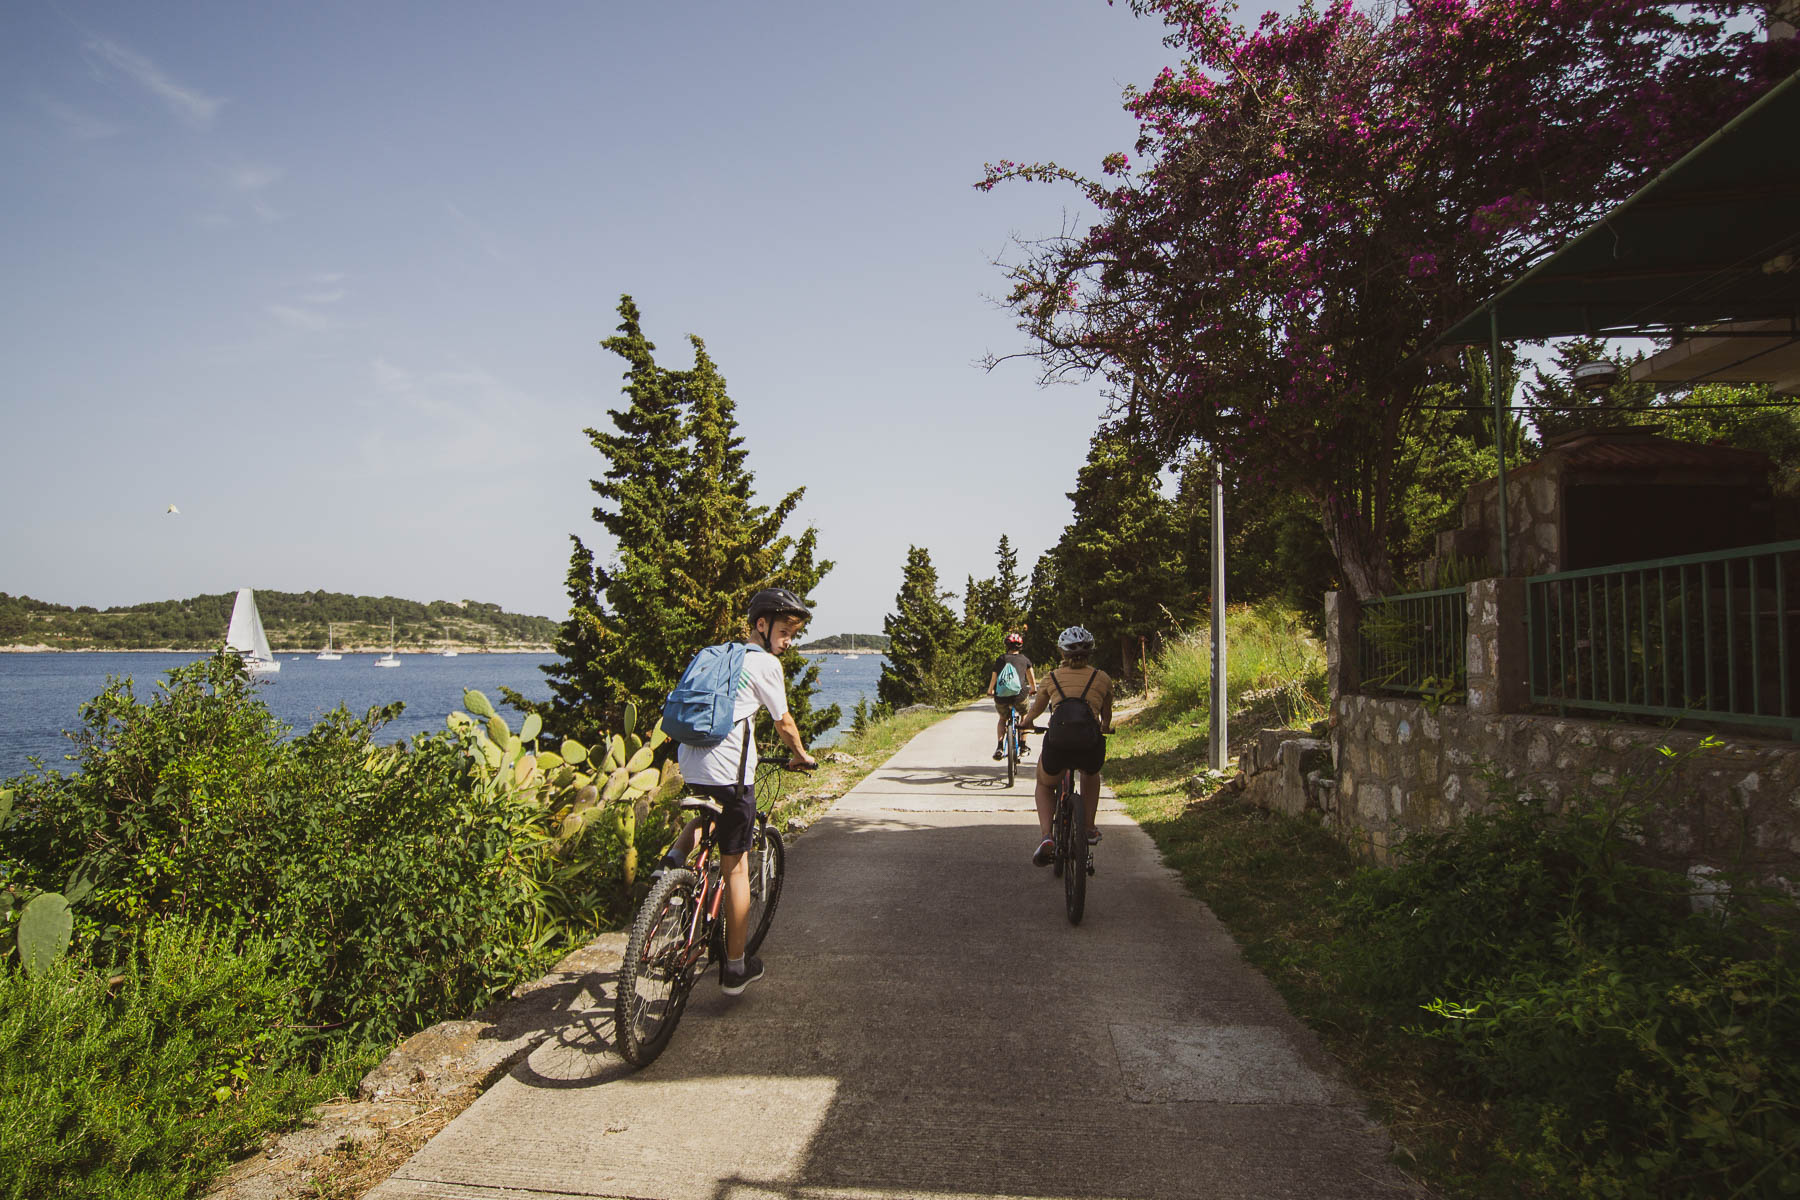 Family biking trip in Croatia